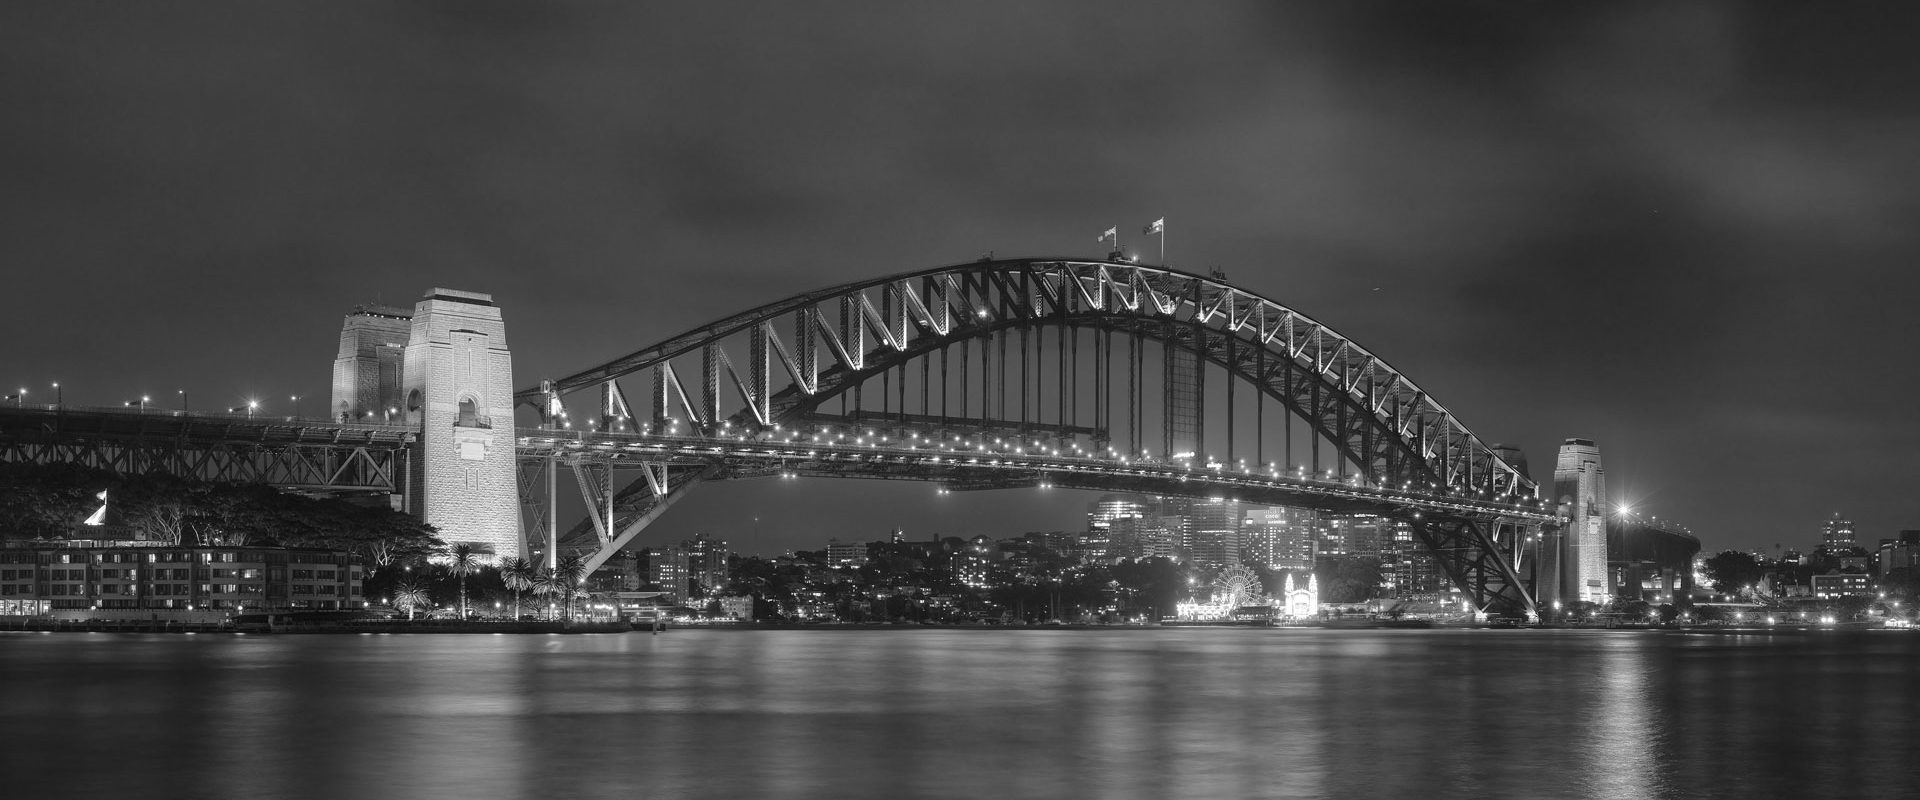 harbour-bridge-bw